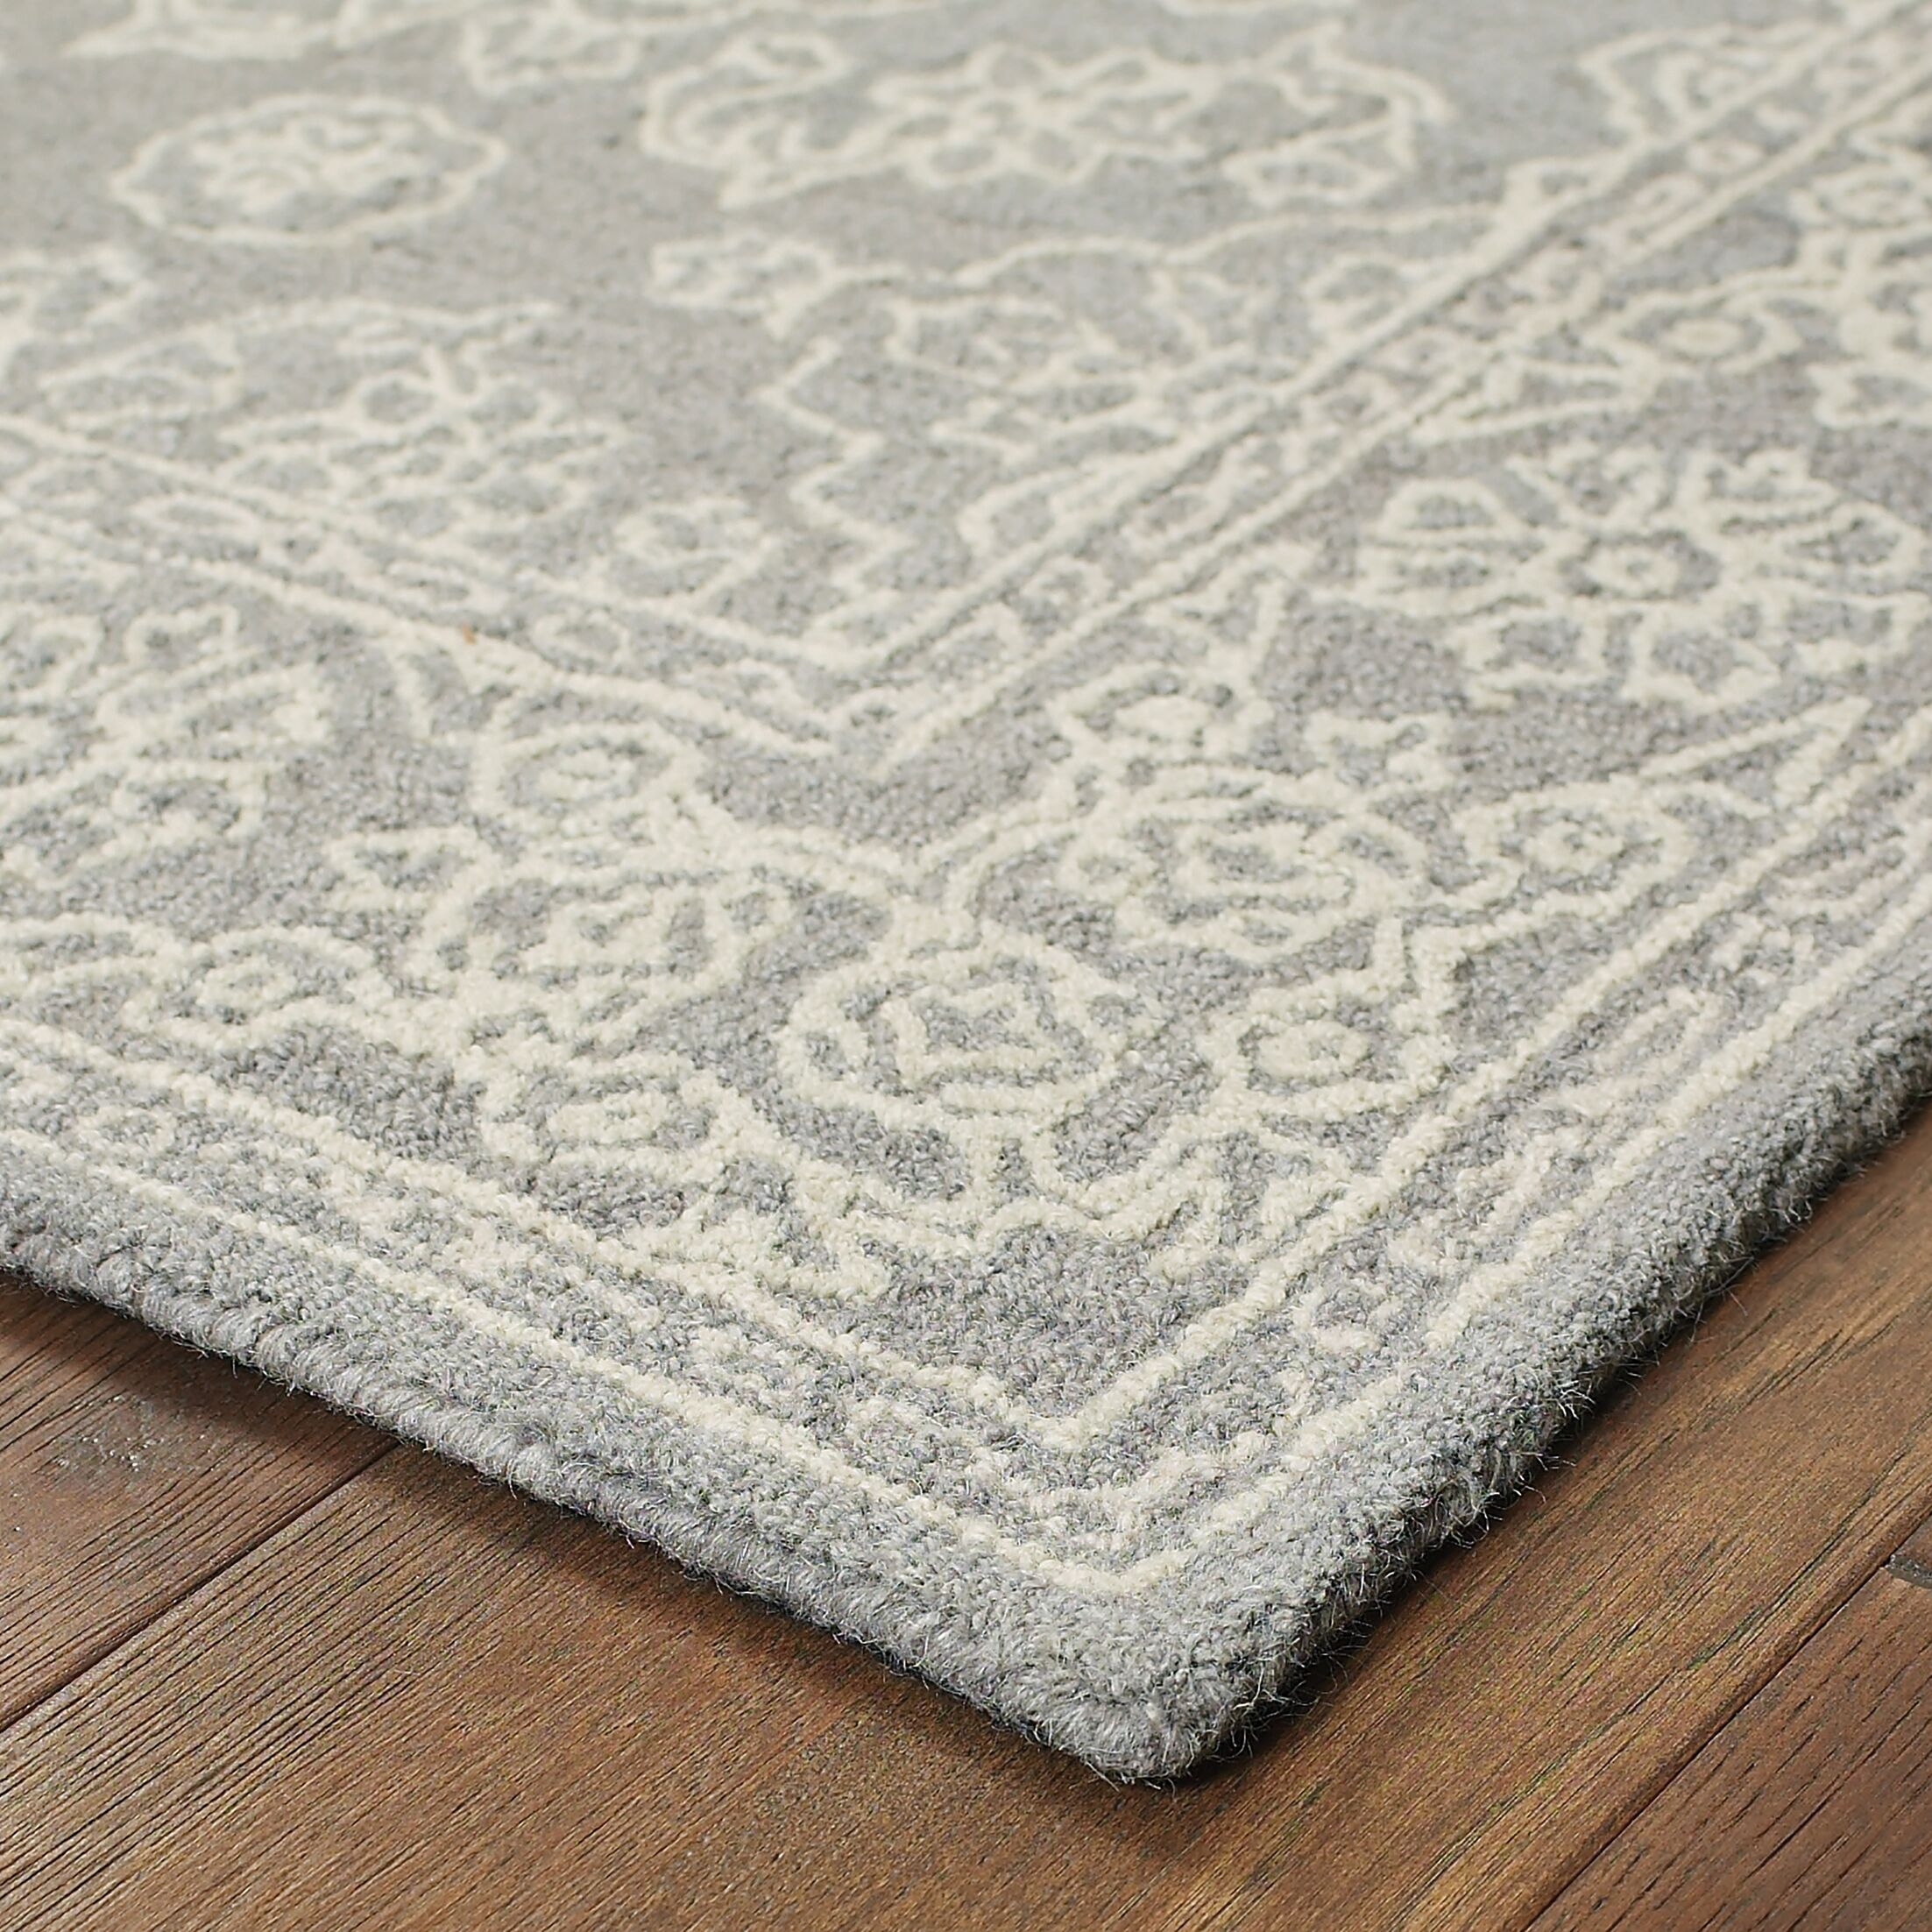 Toussaint Hand-Tufted Gray Area Rug Rug Size: Rectangle 8' x 10'